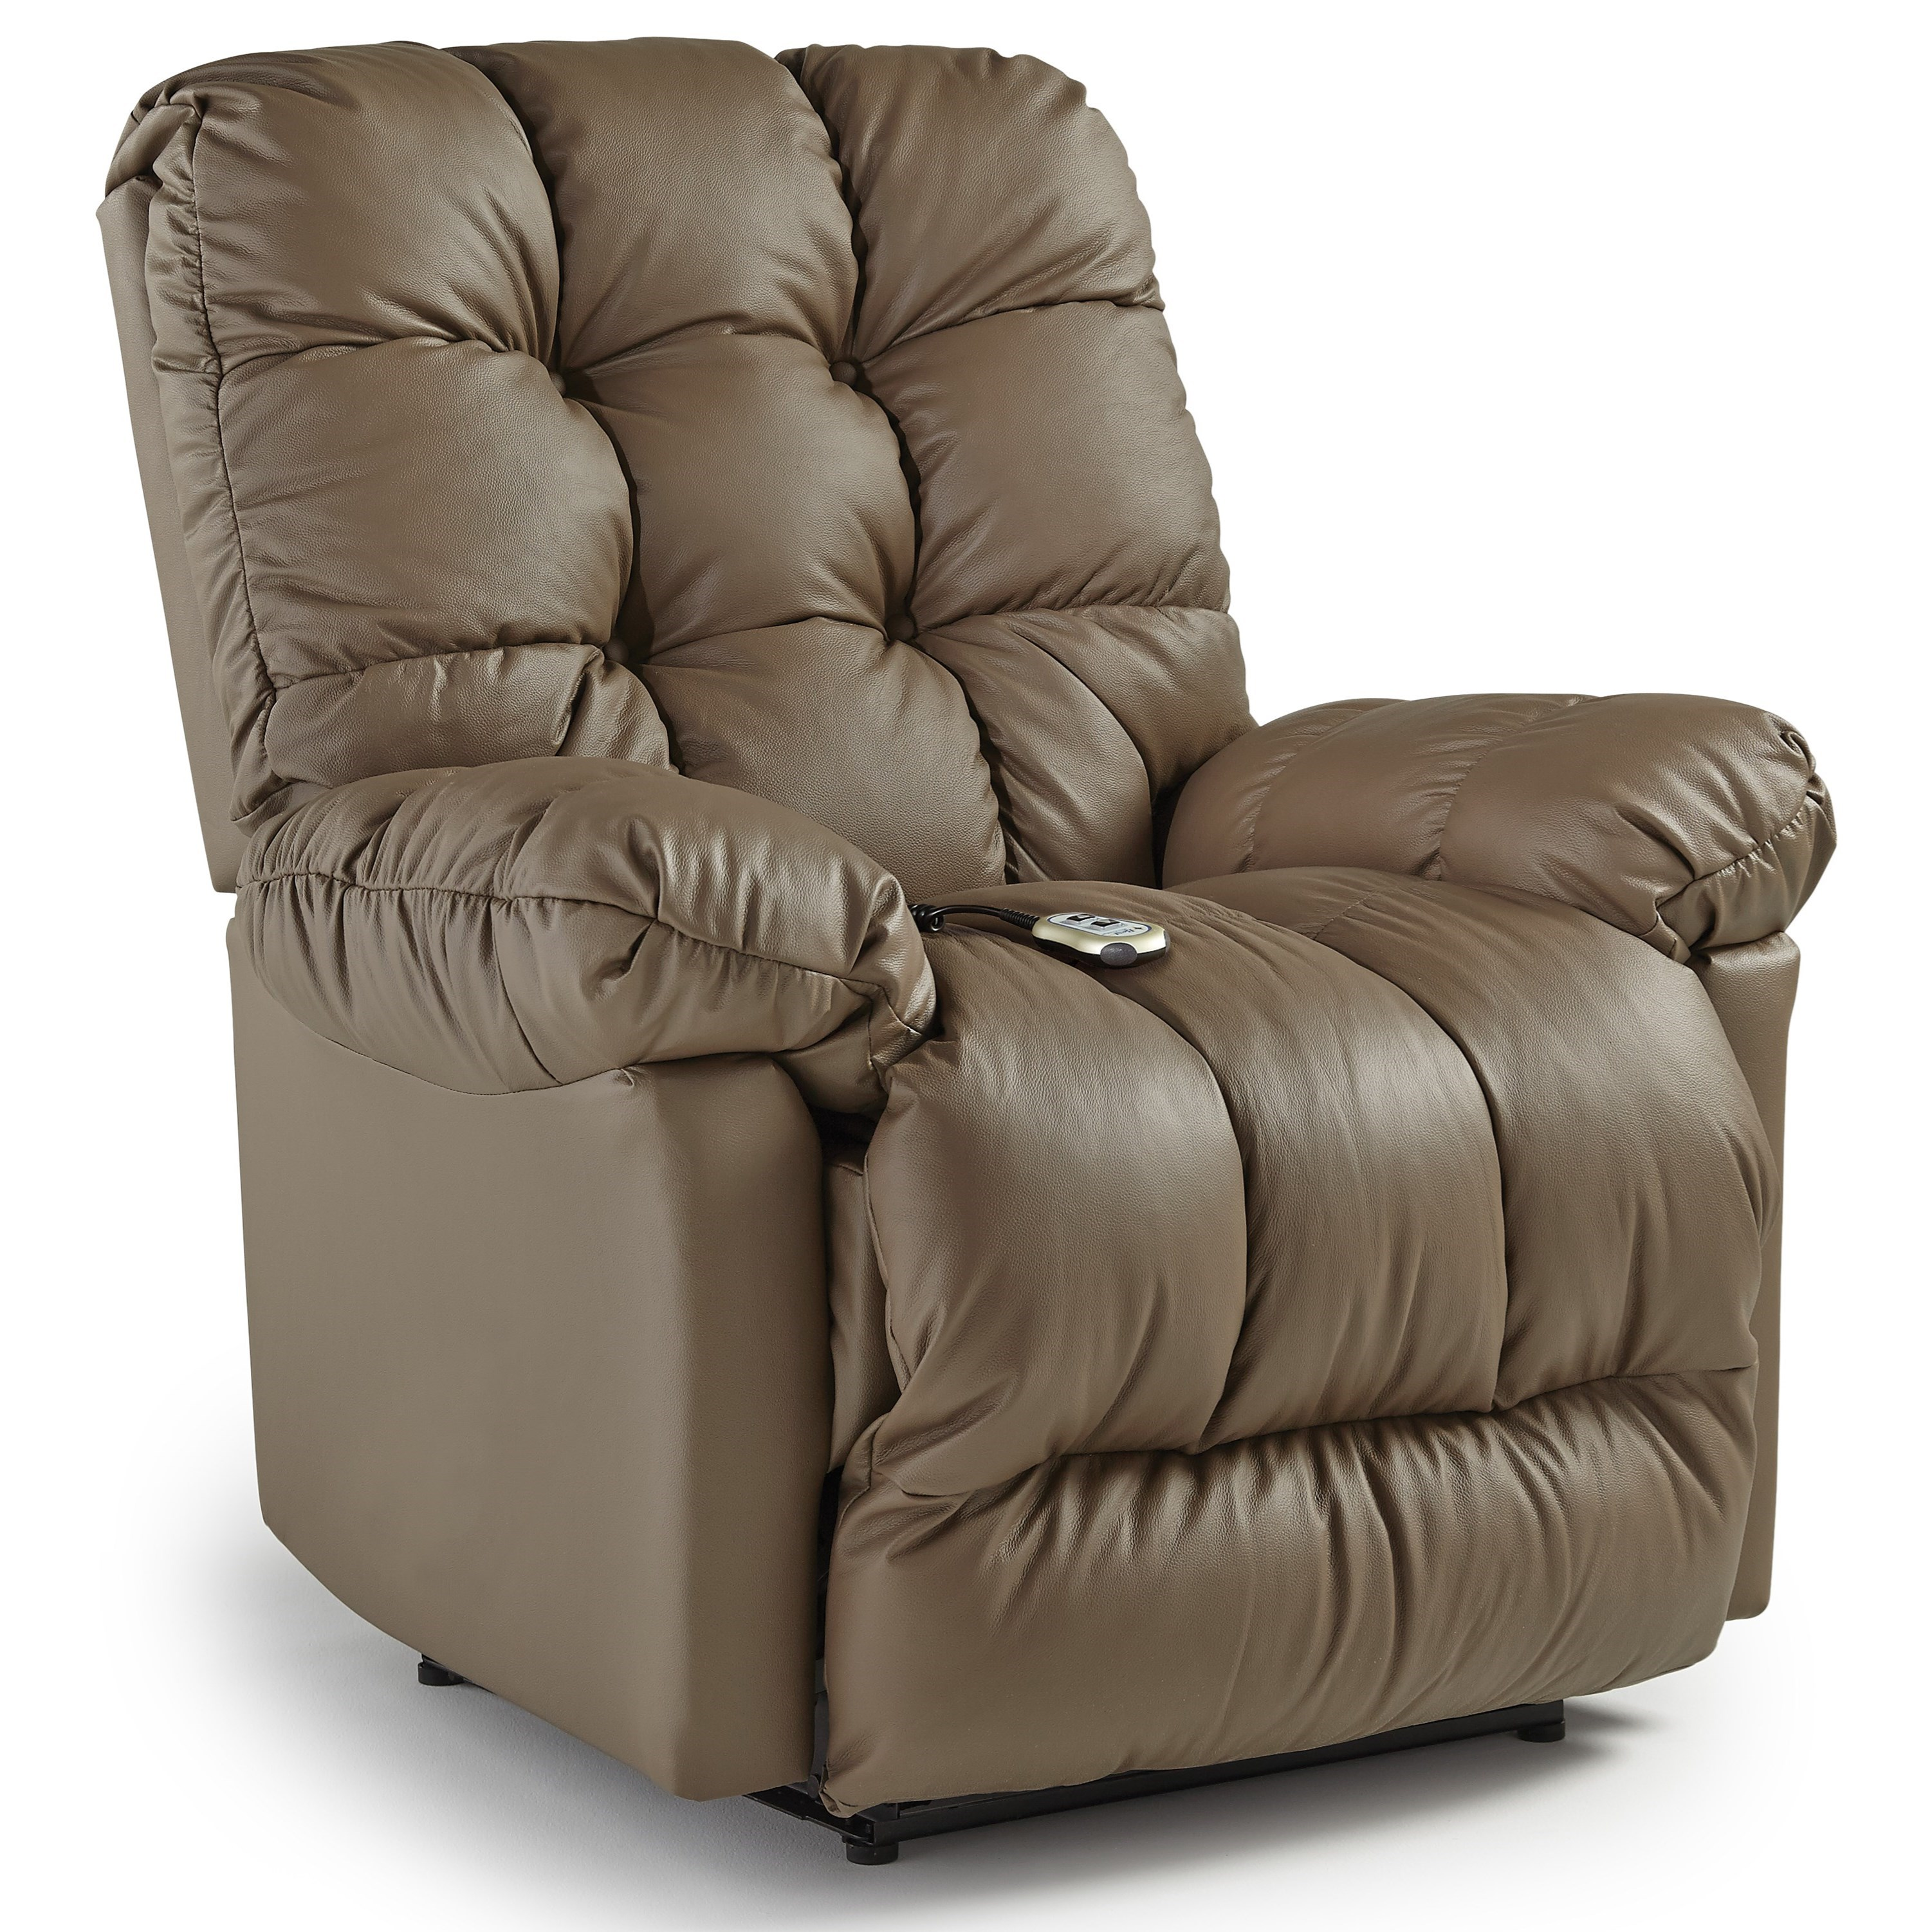 power lift chair recliner tantra review best home furnishings medium recliners brosmer